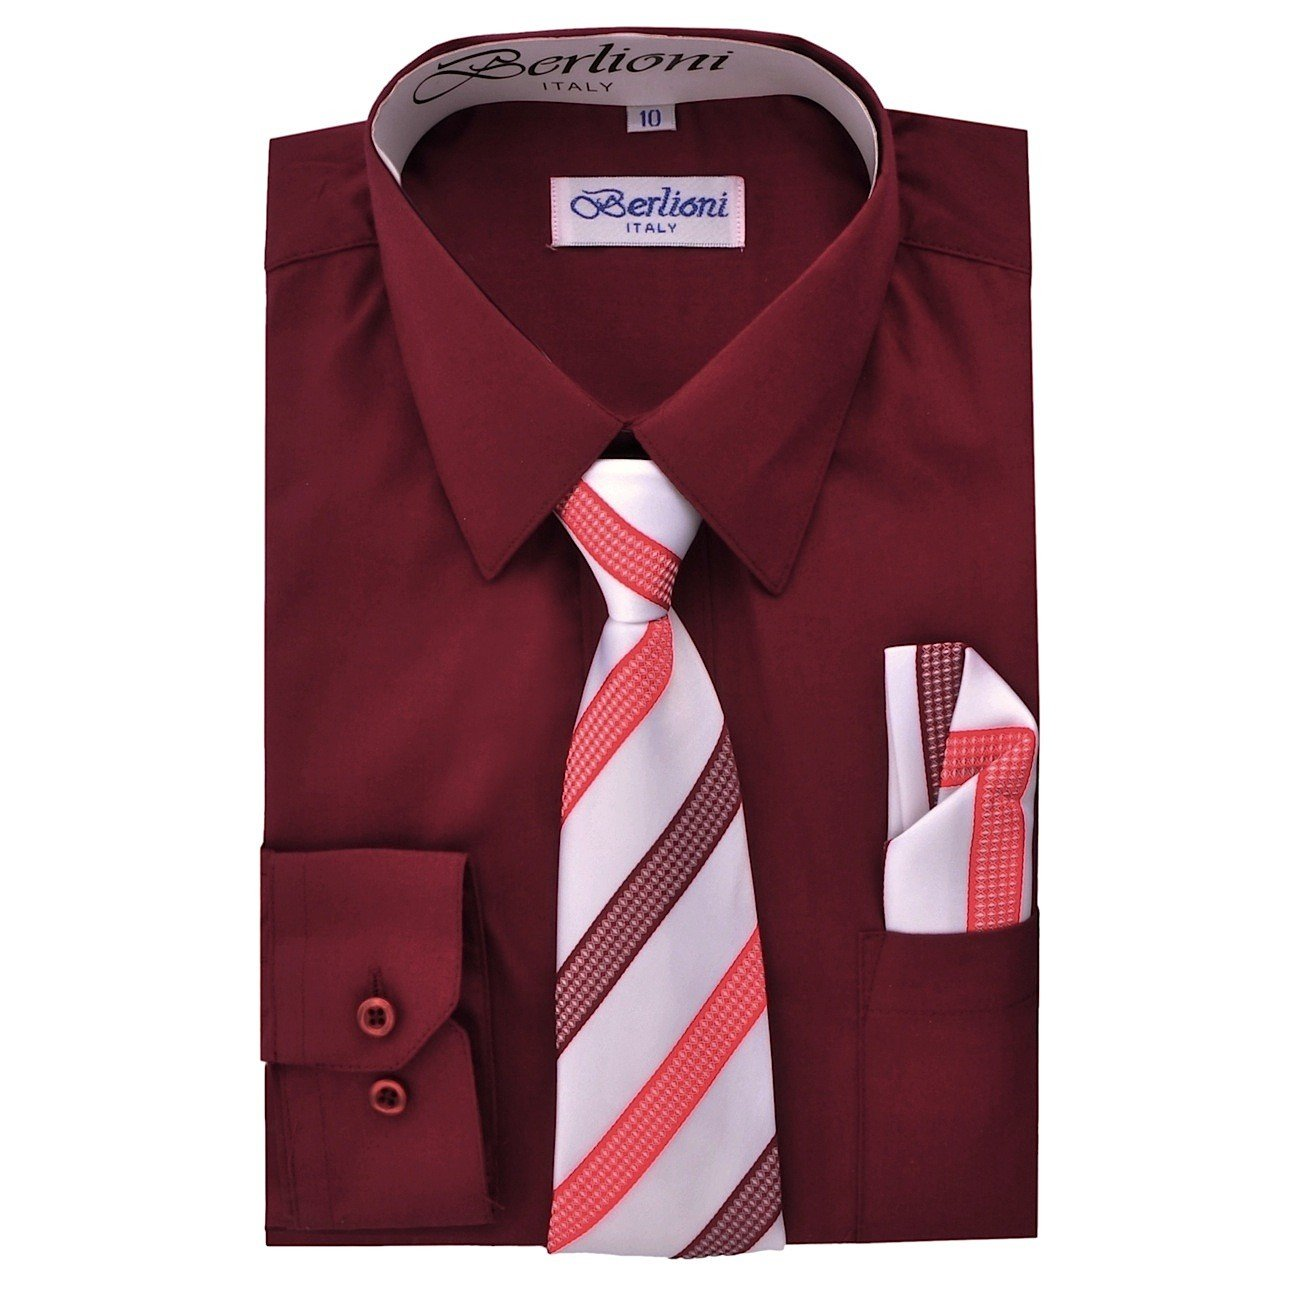 Boy's Dress Shirt, Necktie, and Hanky Set - Burgundy, Size 14 Boy' s Dress Shirt 700A-BURG-14